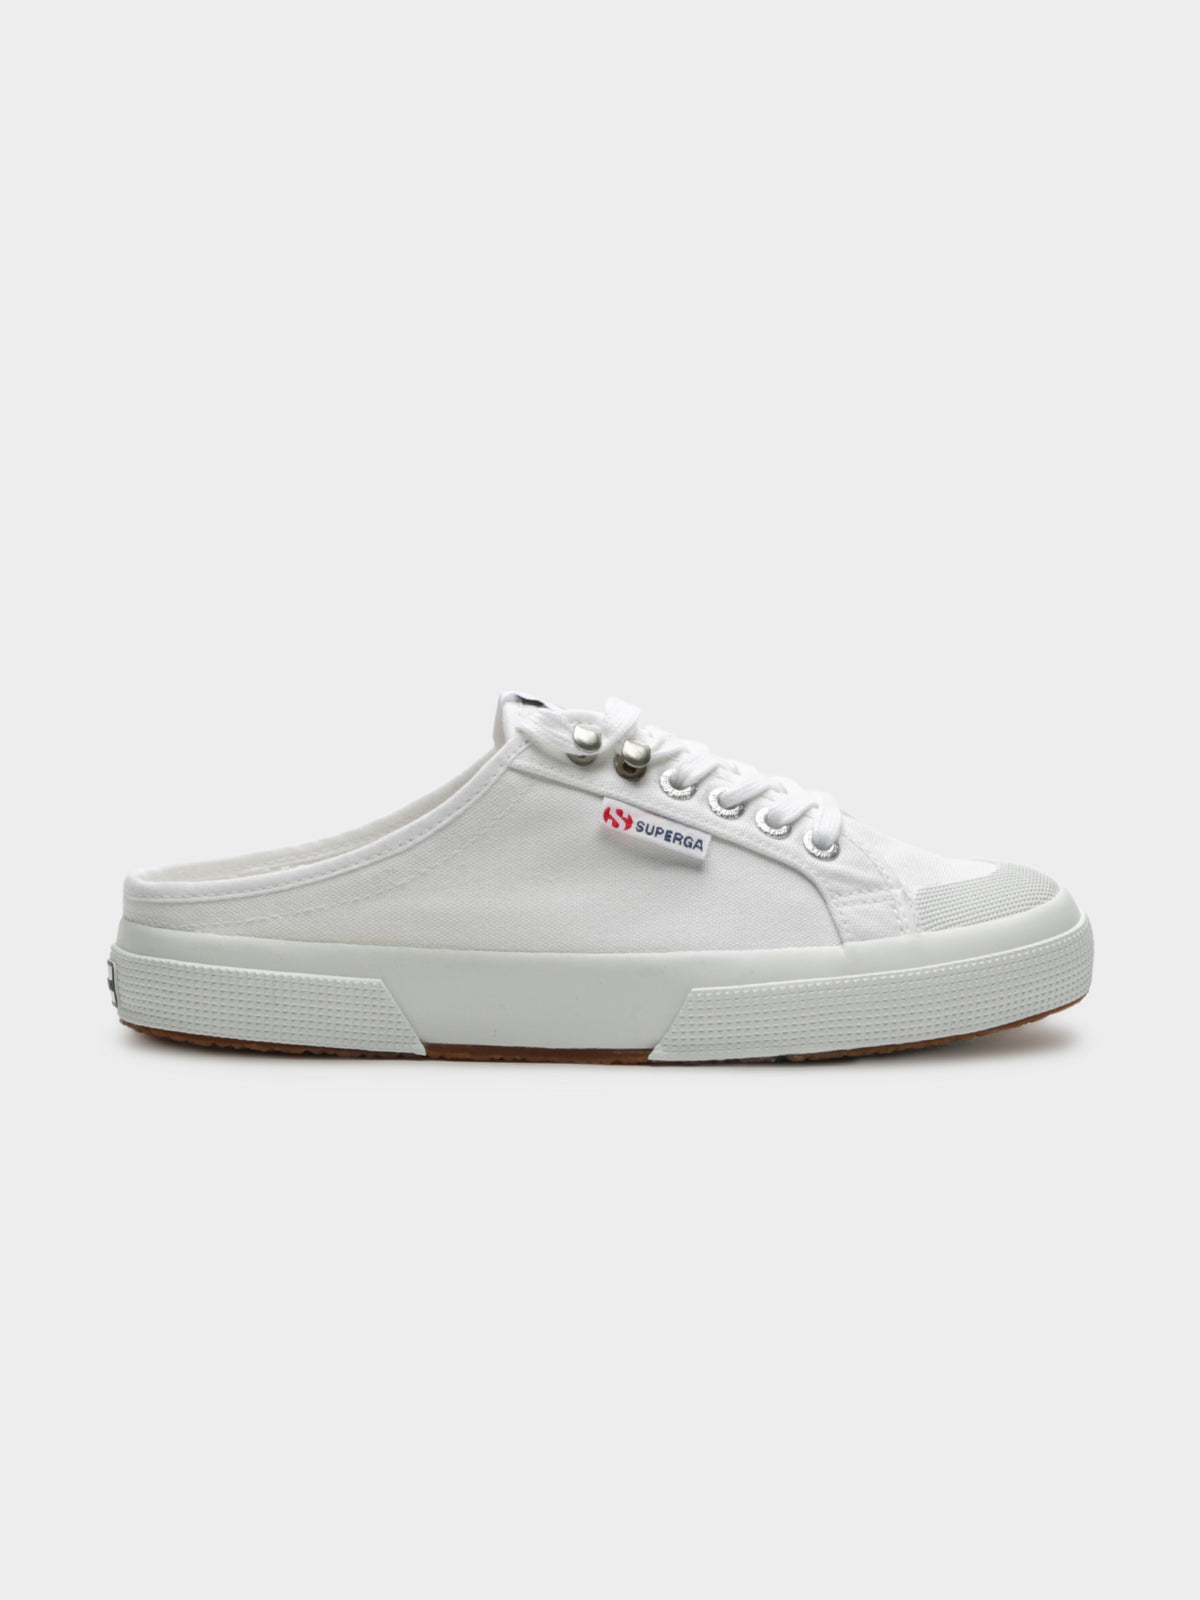 Alexa Chung 2292 Cot Hook Sneakers in White